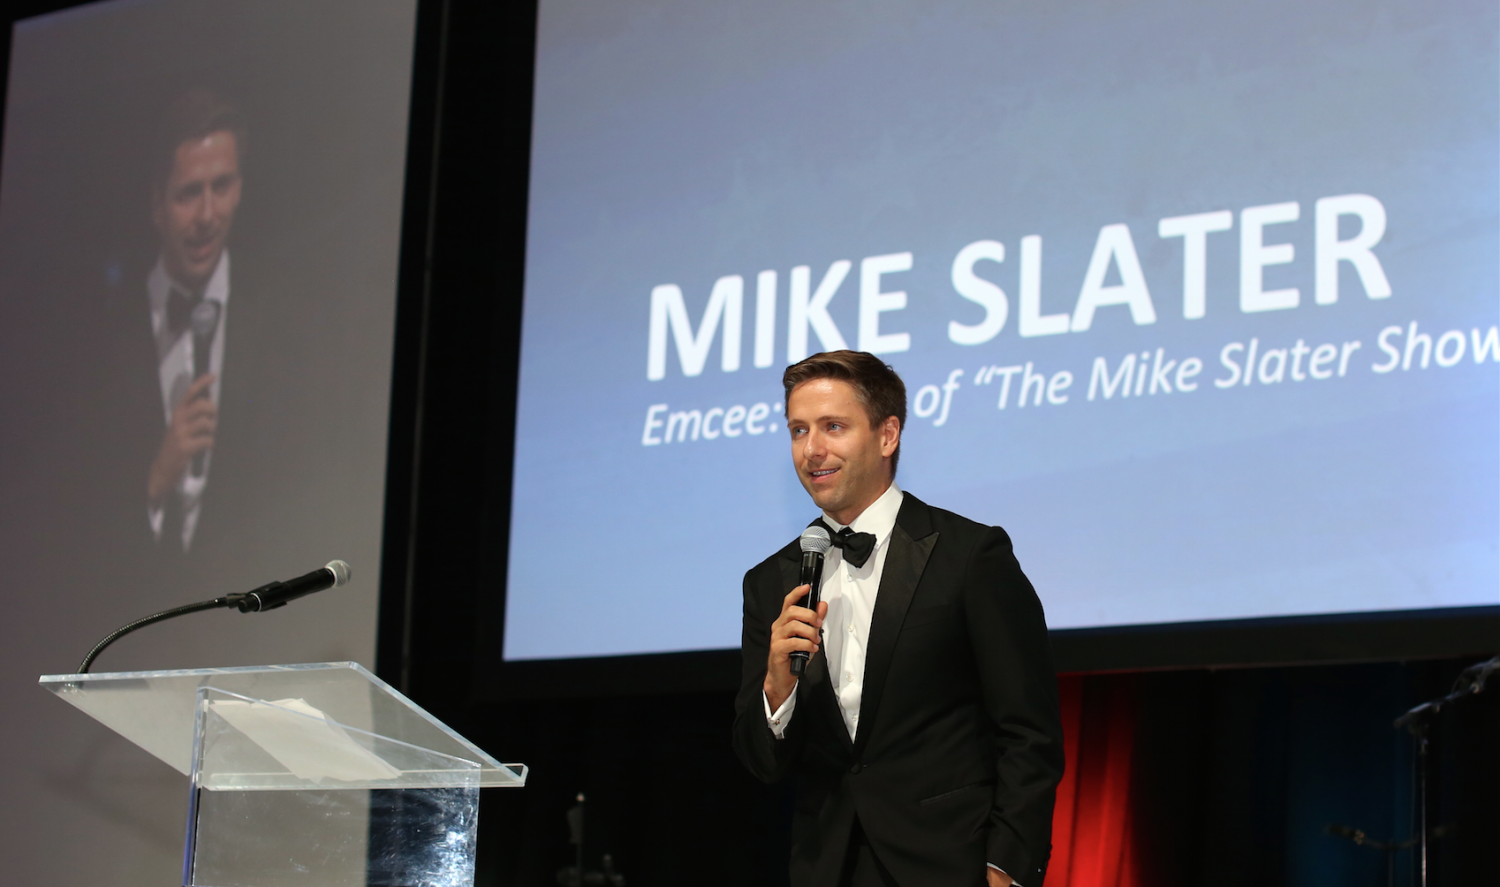 Mike Slater of the Mike Slater show was the emcee at Solutions For Change Gala at Jetsource